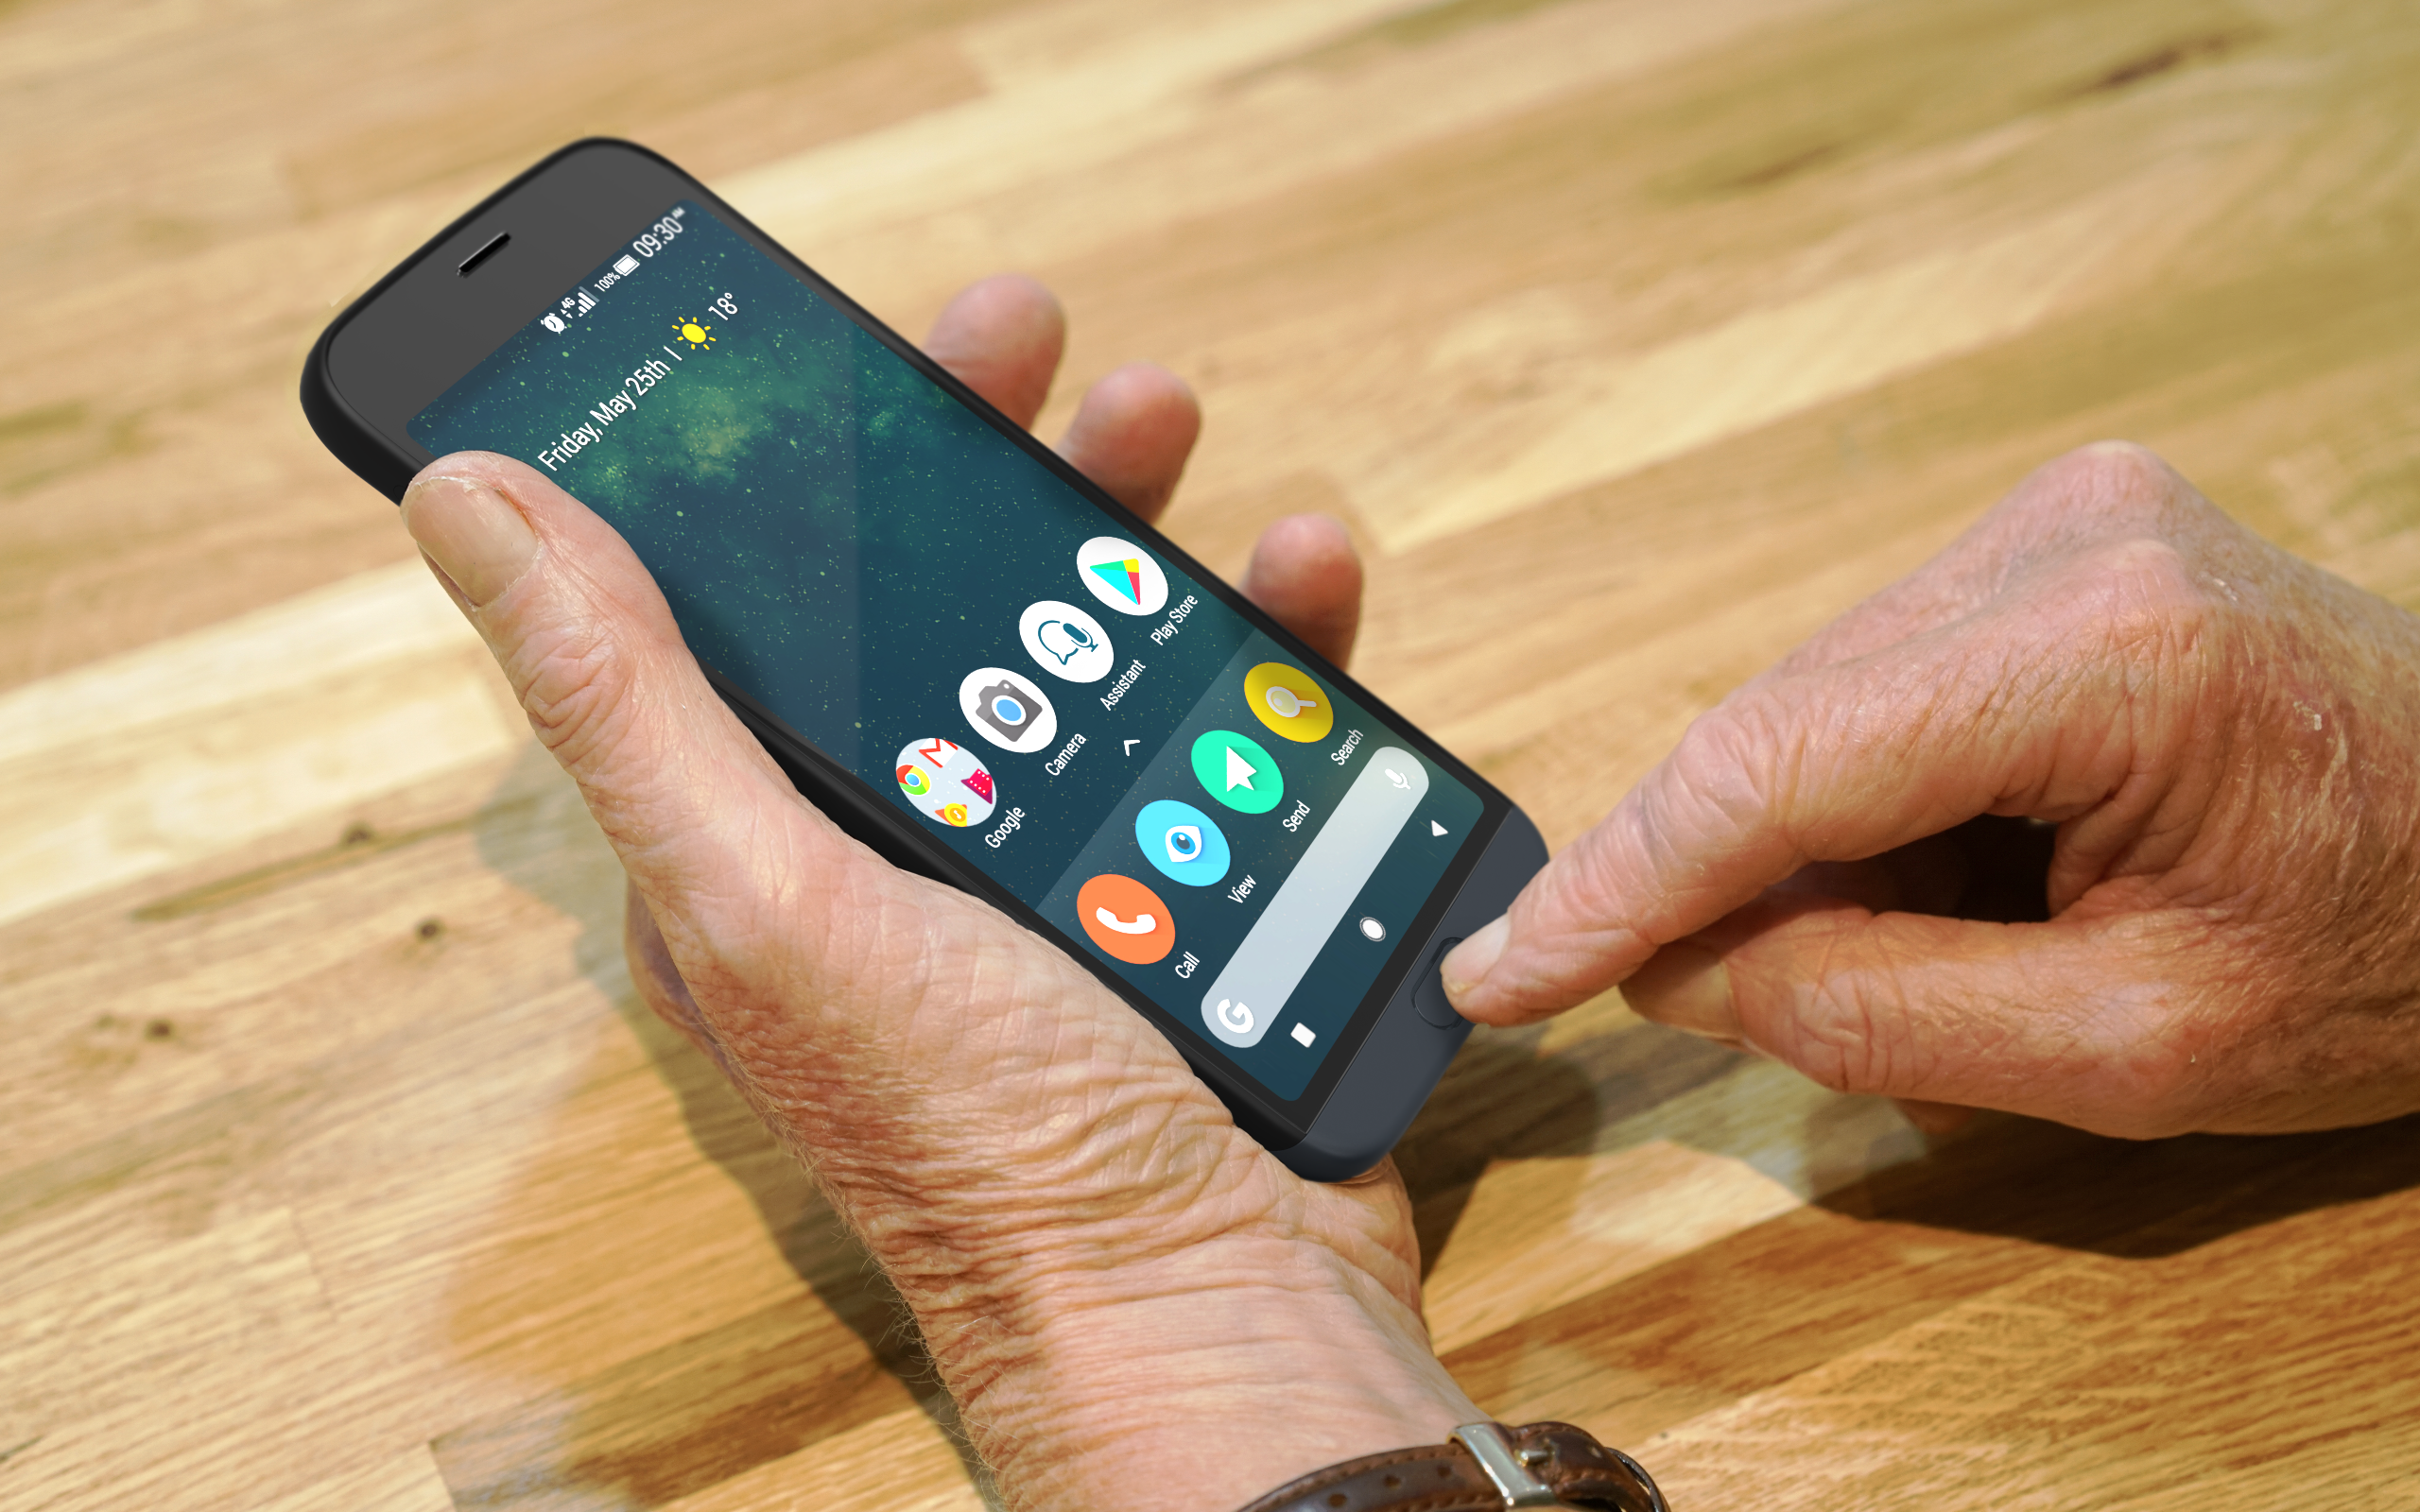 an older man's hands holding and using the touchscreen on a Doro phone